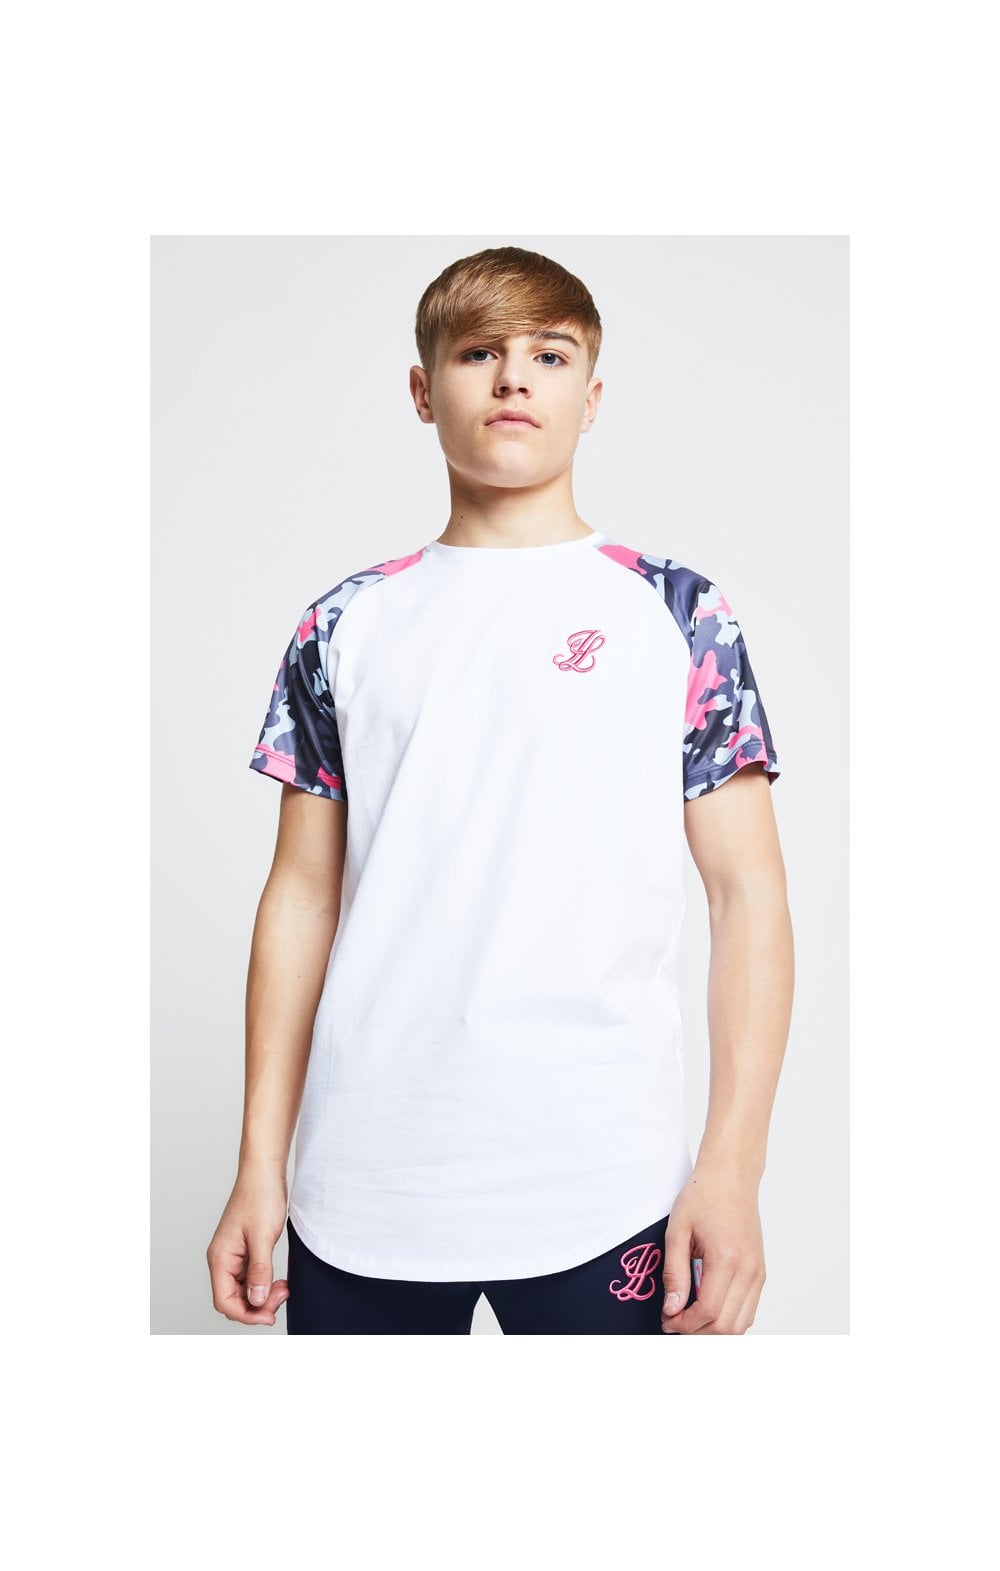 Illusive London Raglan Tee – White & Neon Pink Camo (1)